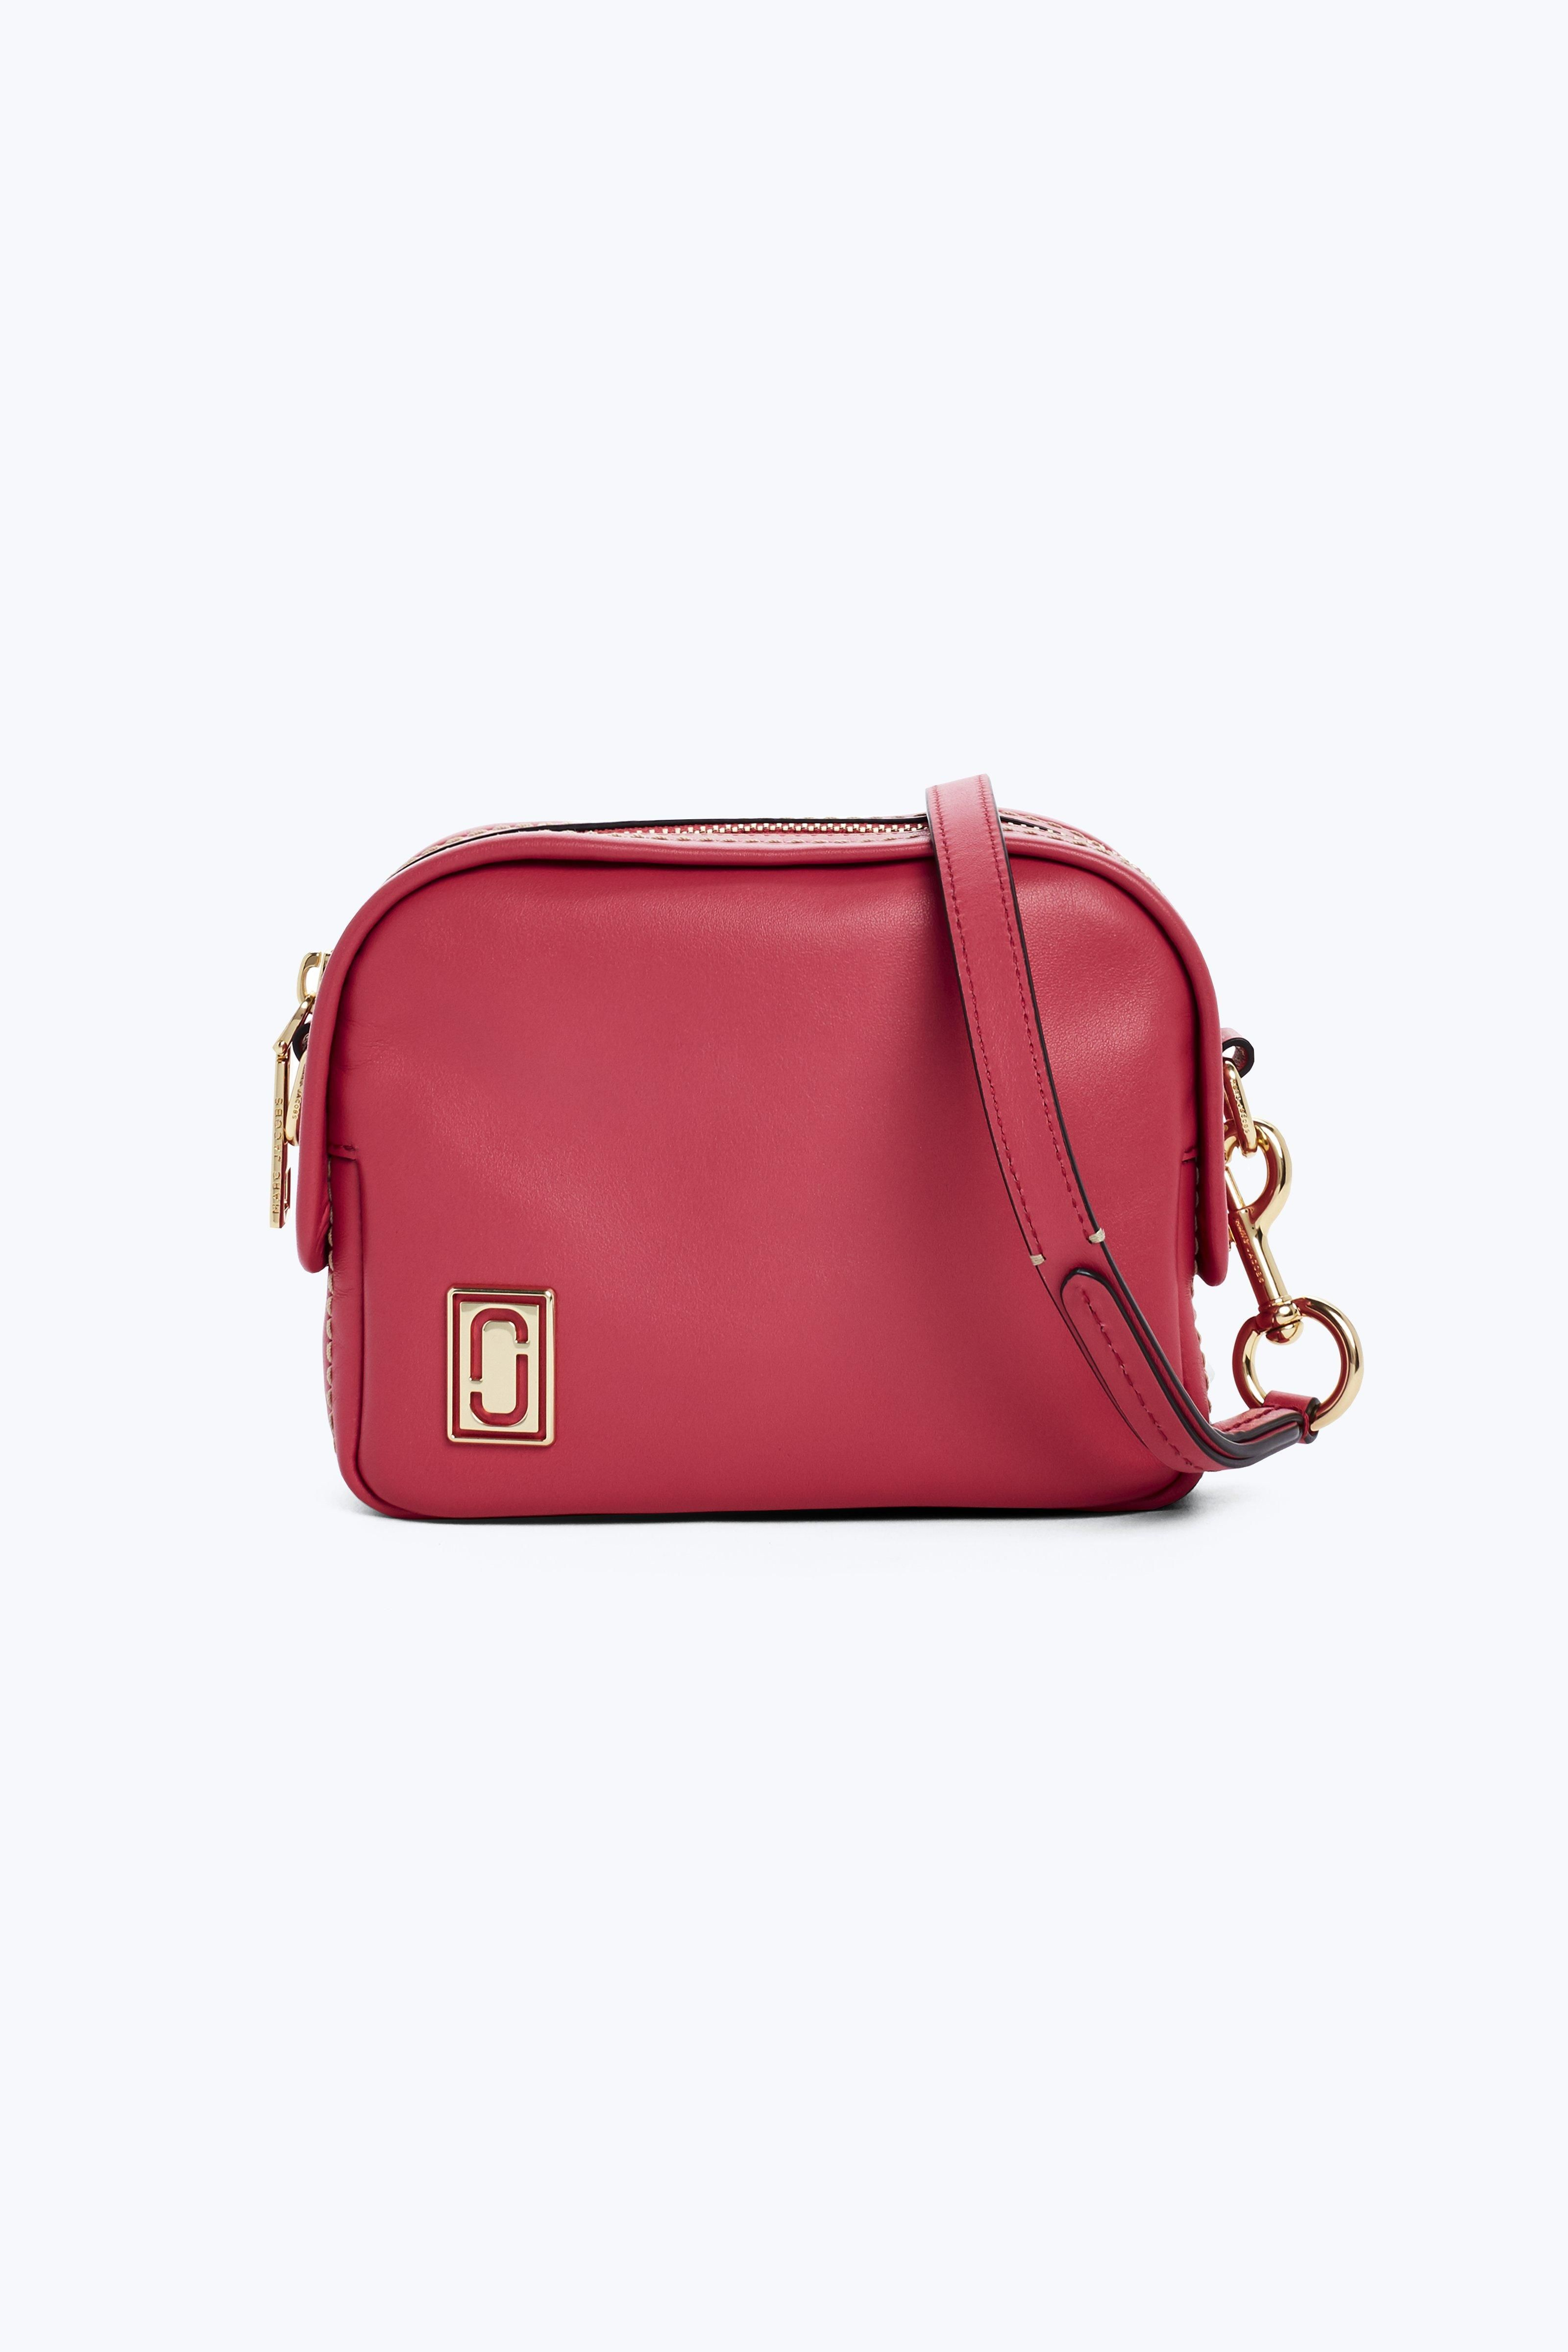 7674263dc9a6 MARC JACOBS The Mini Squeeze Bag.  marcjacobs  bags  shoulder bags  leather   crossbody